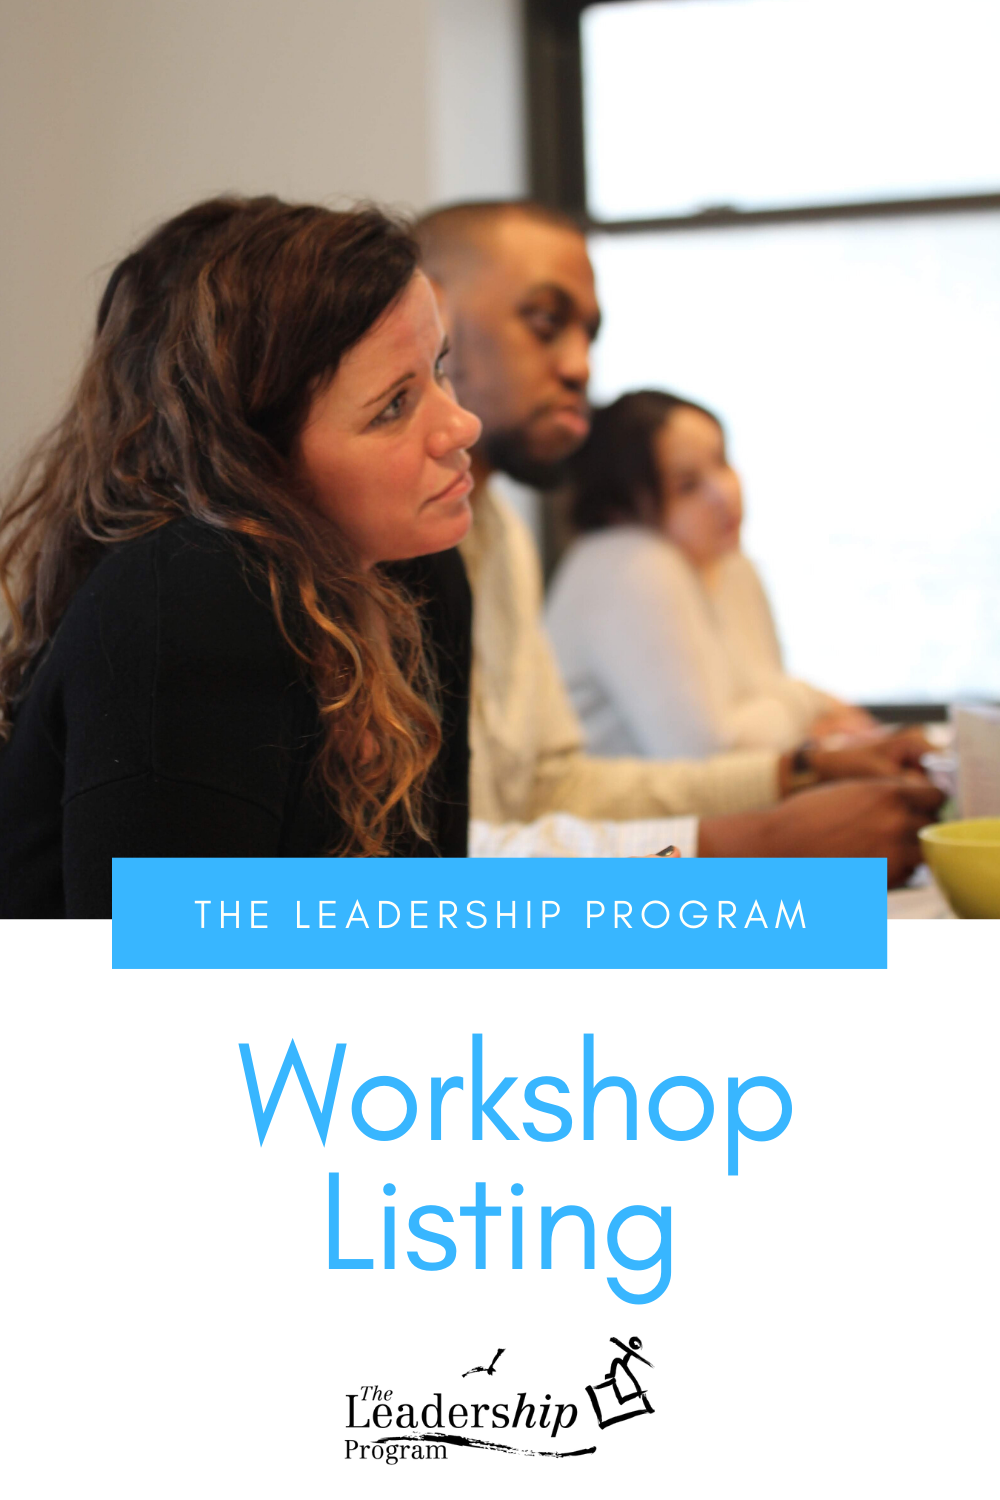 Workshop Listing